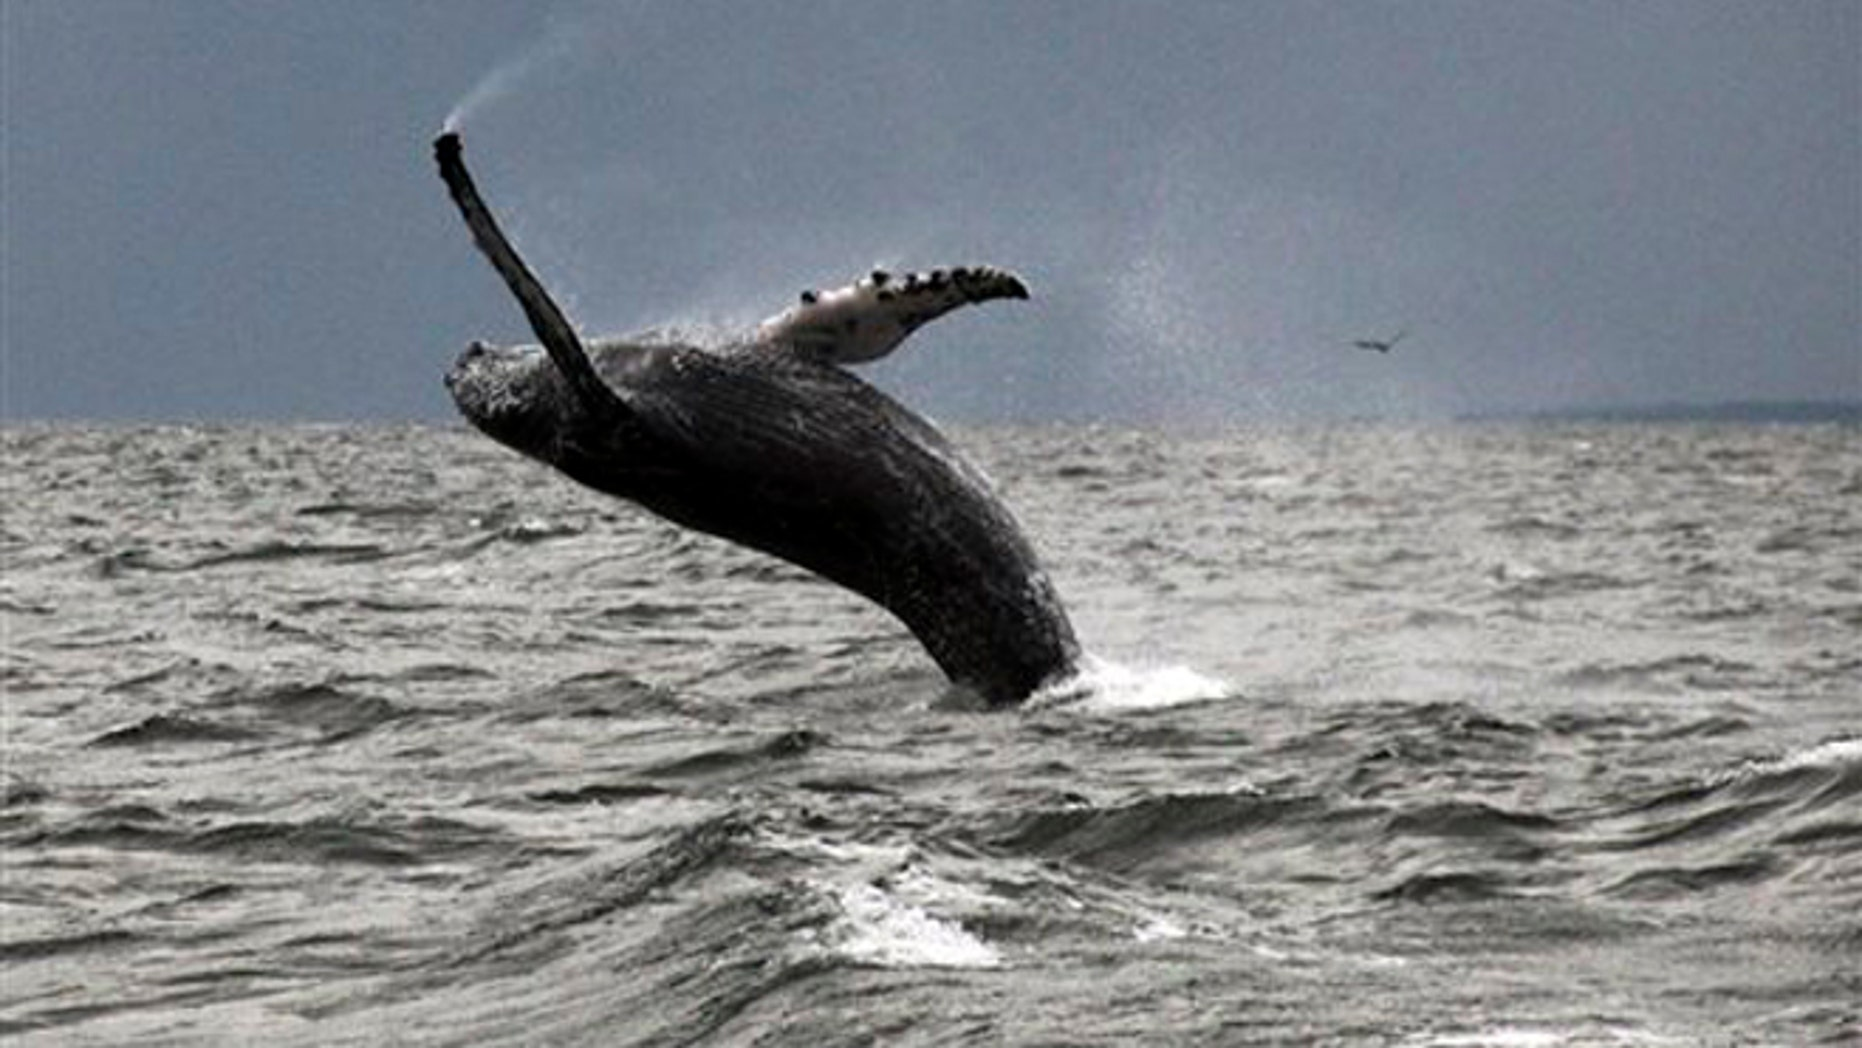 Sept. 12, 2015: In this photo provided by Dan Lent, a humpback whale breaches the water in Long Island Sound off the coast of Stamford, Conn. Biologists at the Maritime Aquarium at Norwalk, Conn., said whale sightings on the sound this year are the first in more than two decades.